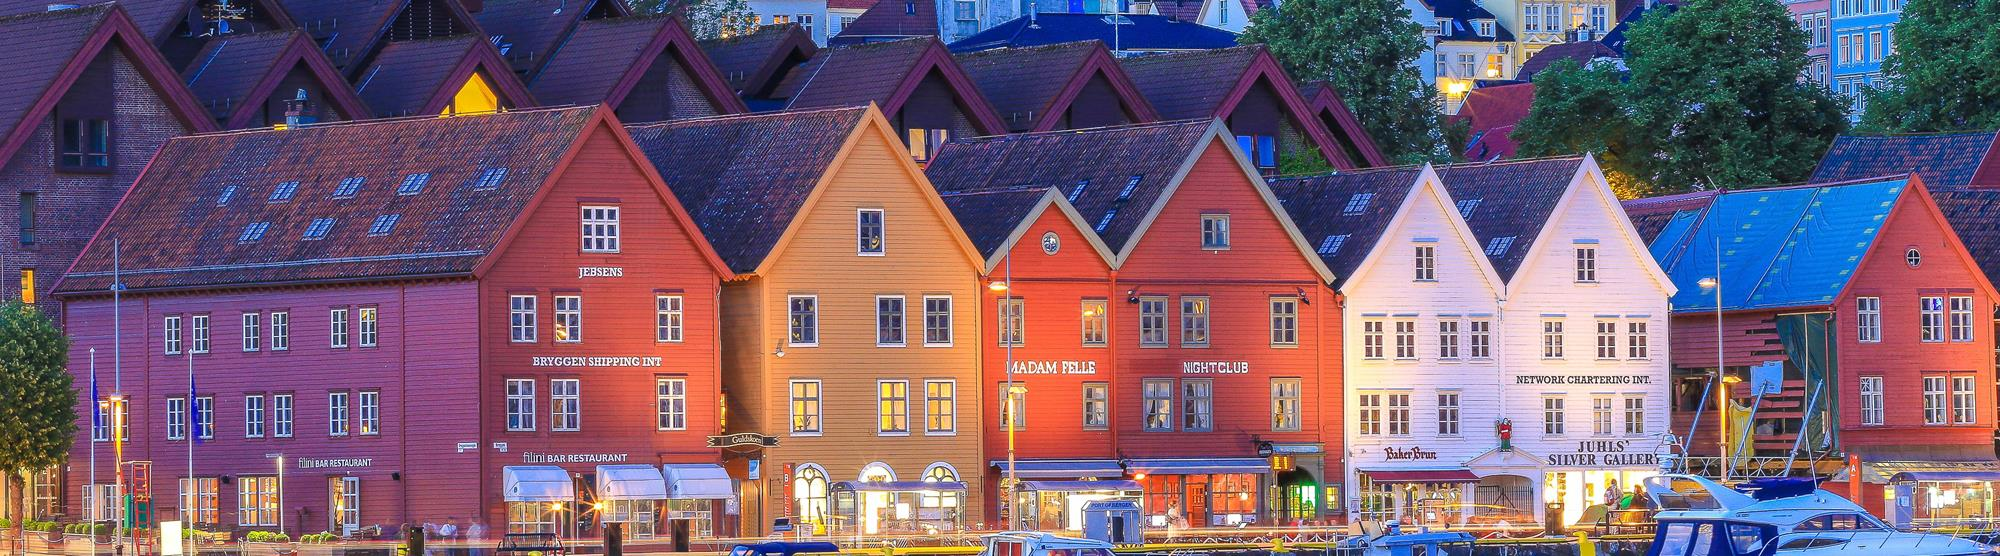 Hanseatic days in Bergen 2016